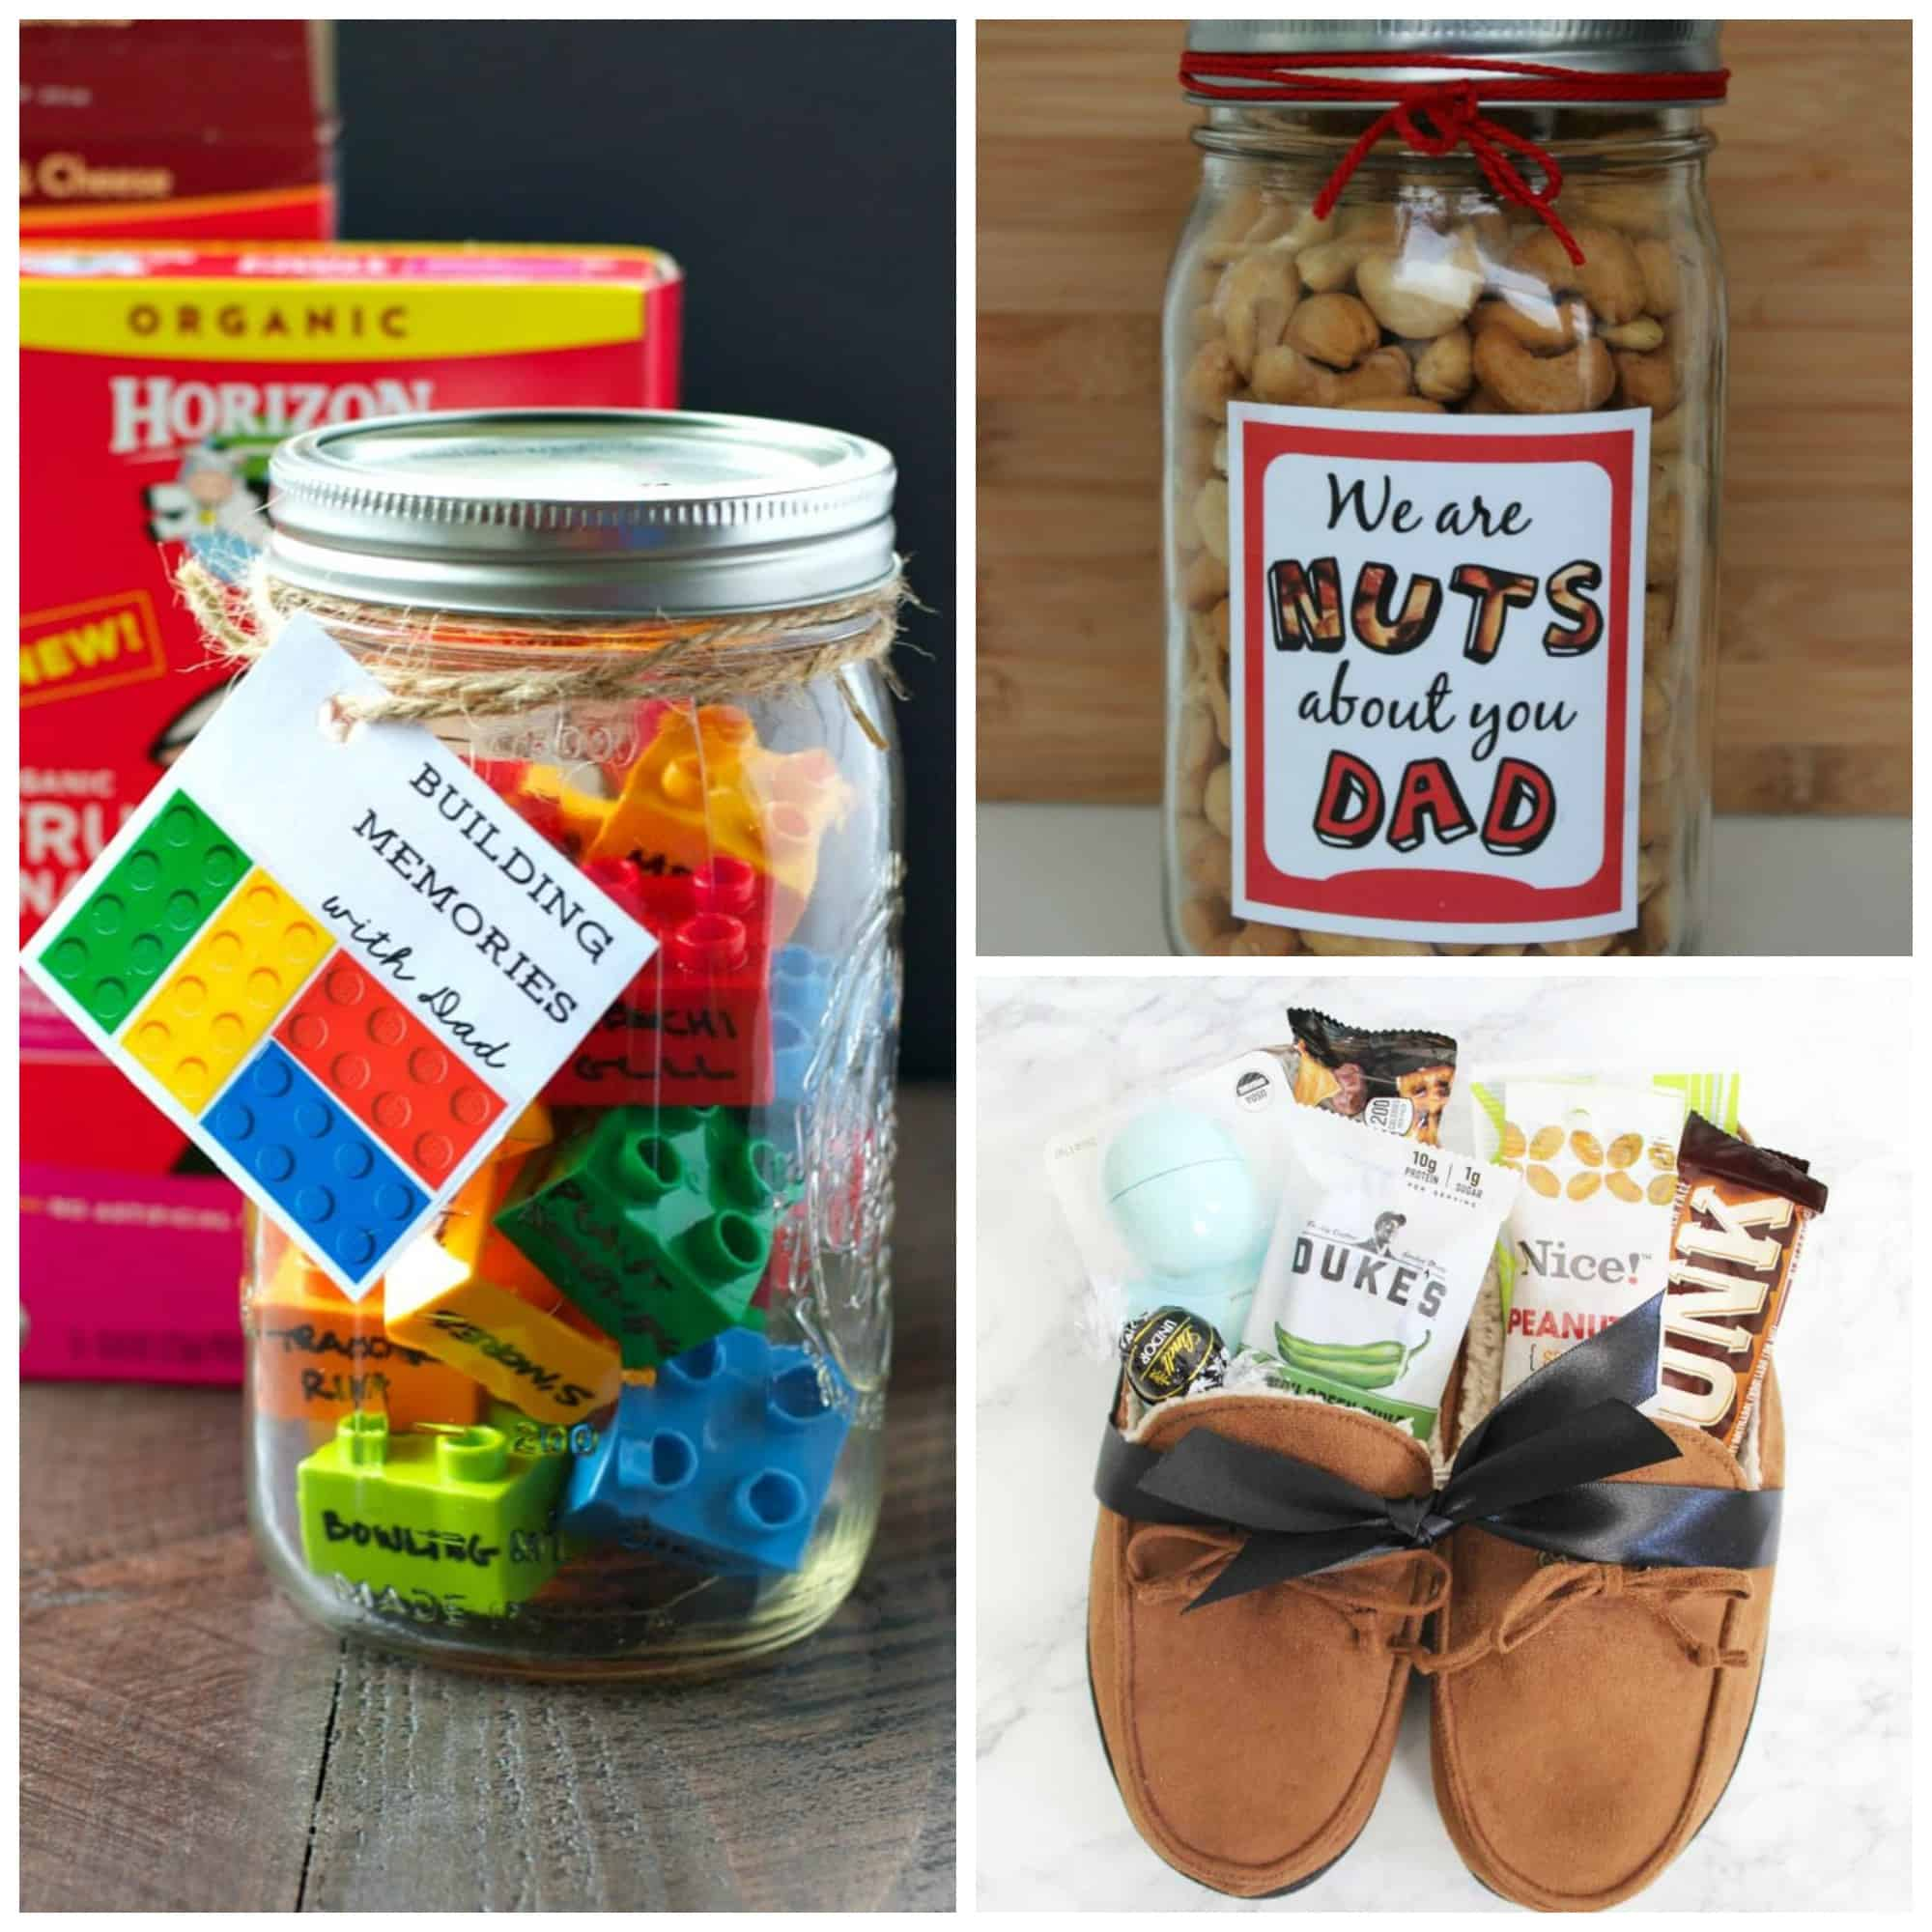 I love these Father's Day DIY Gift Ideas from kids or adults!  There are some clever, and easy last minute ideas here! #fathersday #fathersdaydiygifts #fathersdaygifts